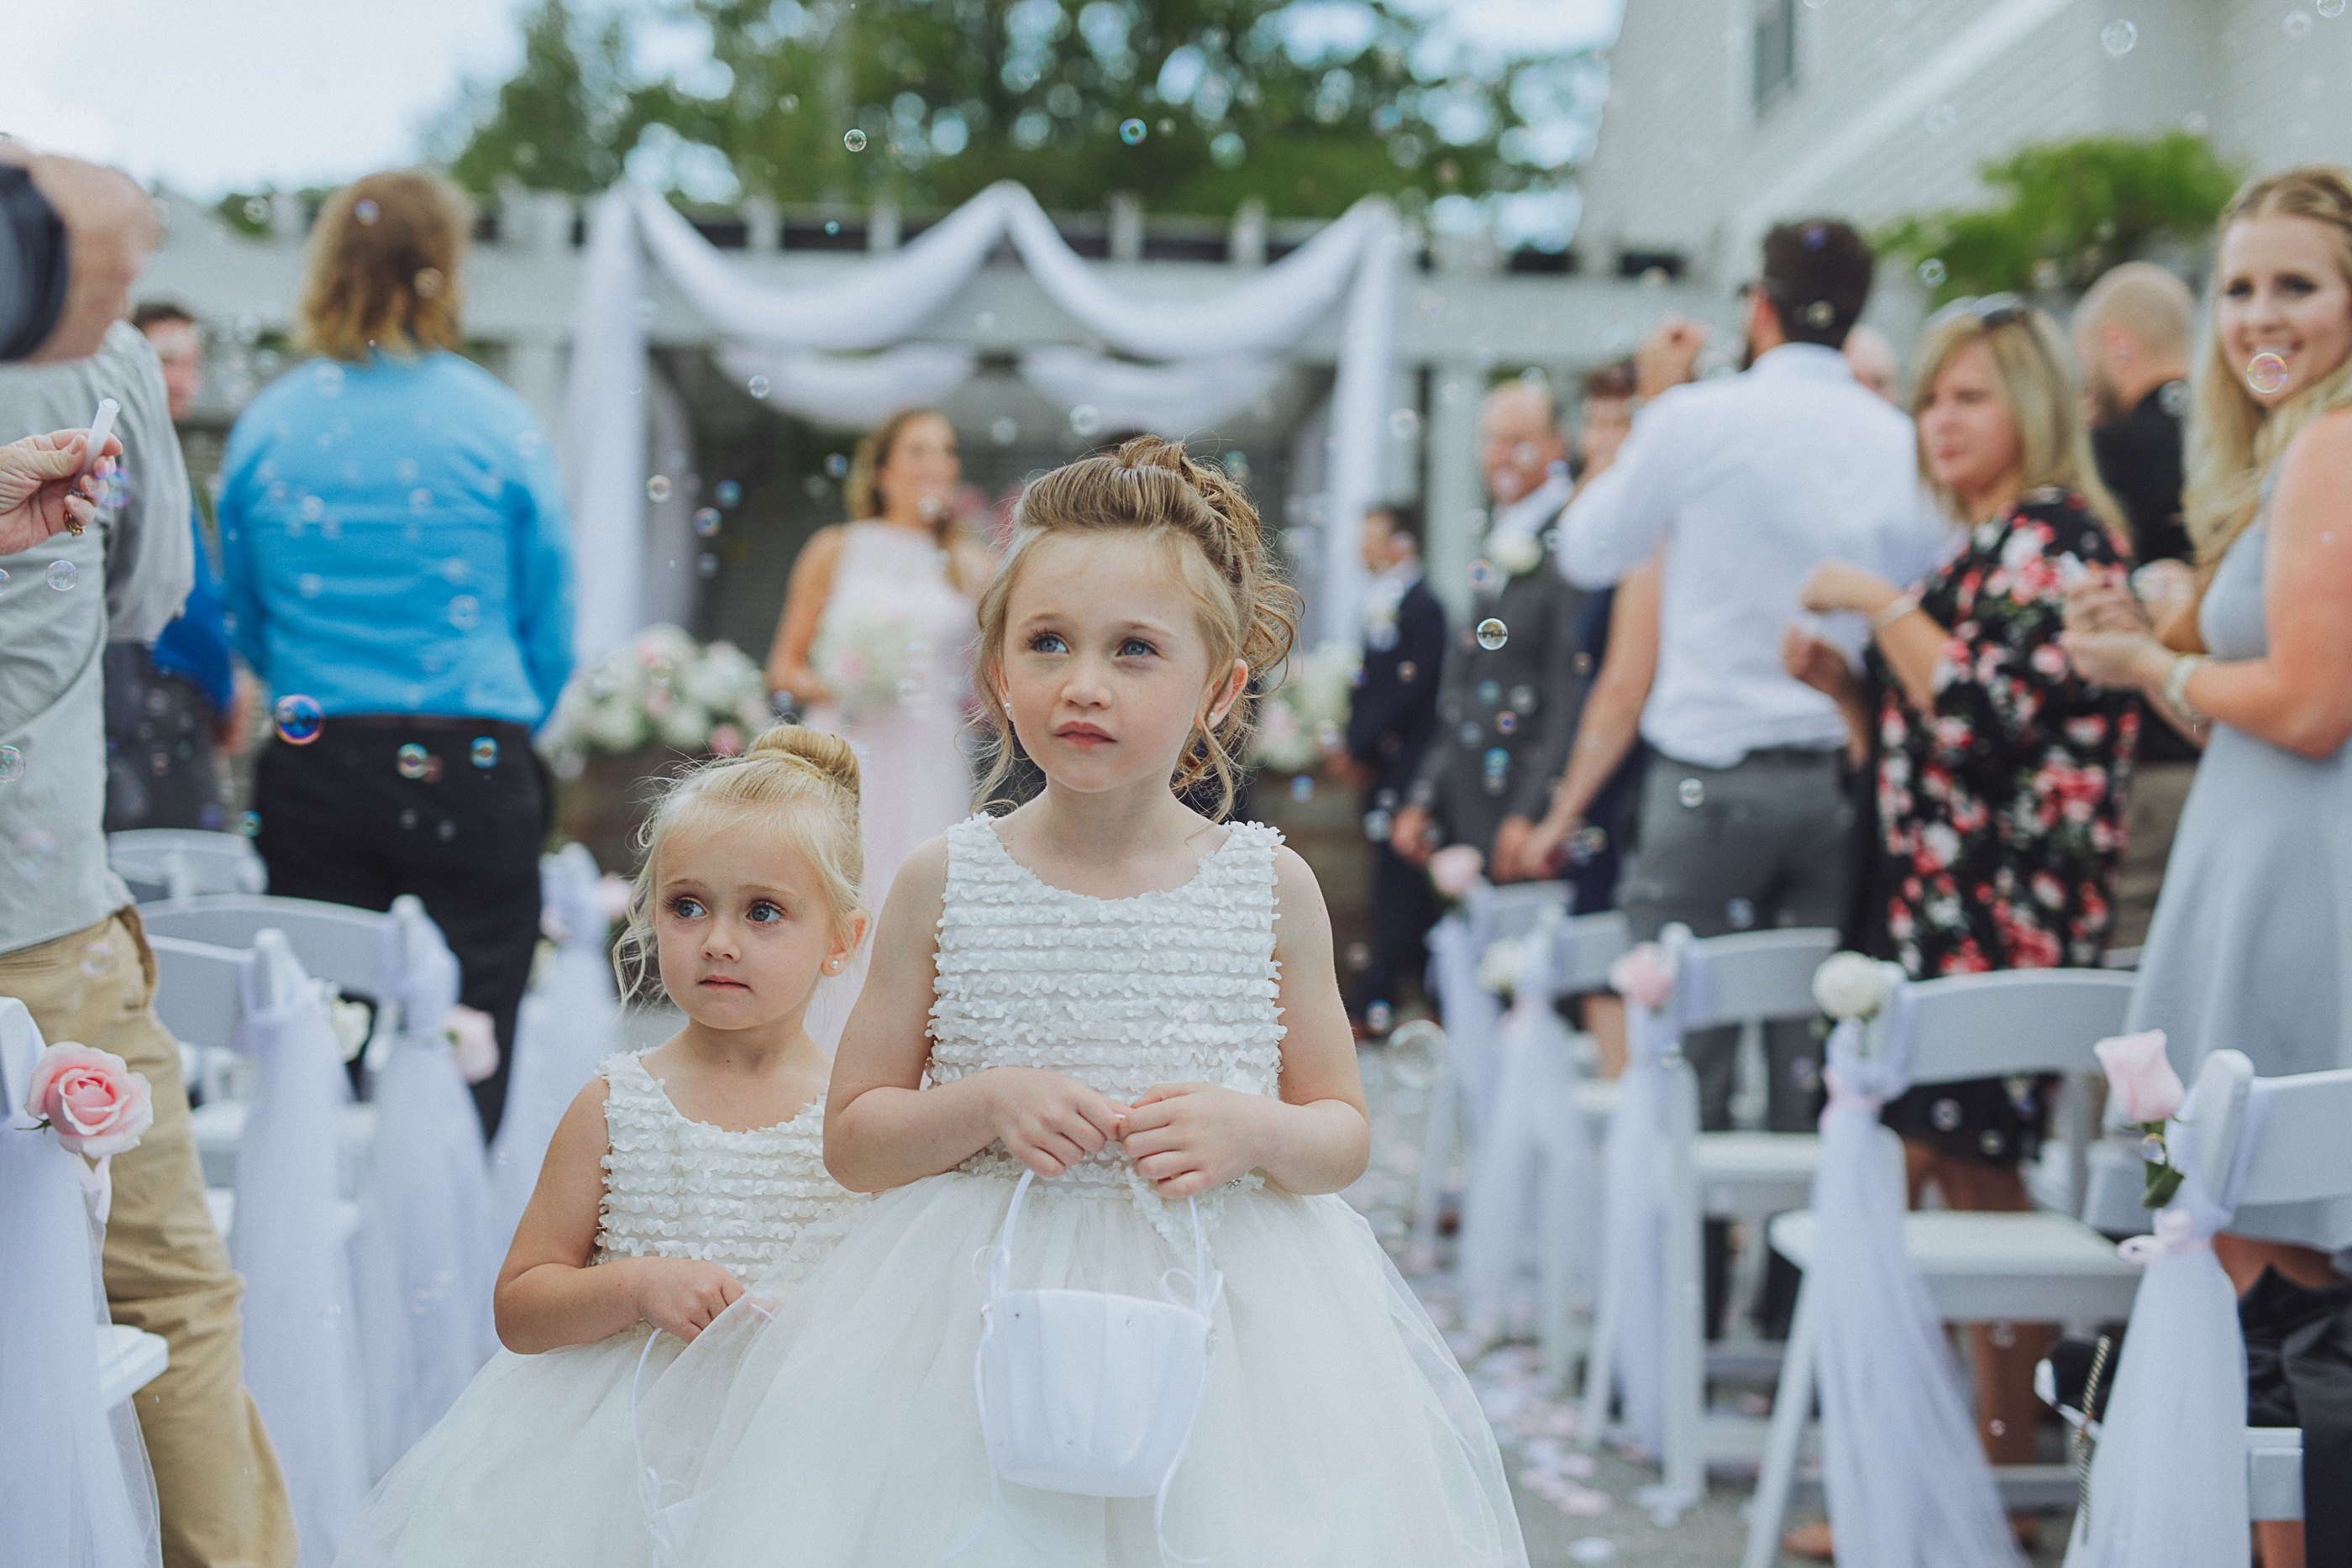 Wedding flower girls - bubbles celebration